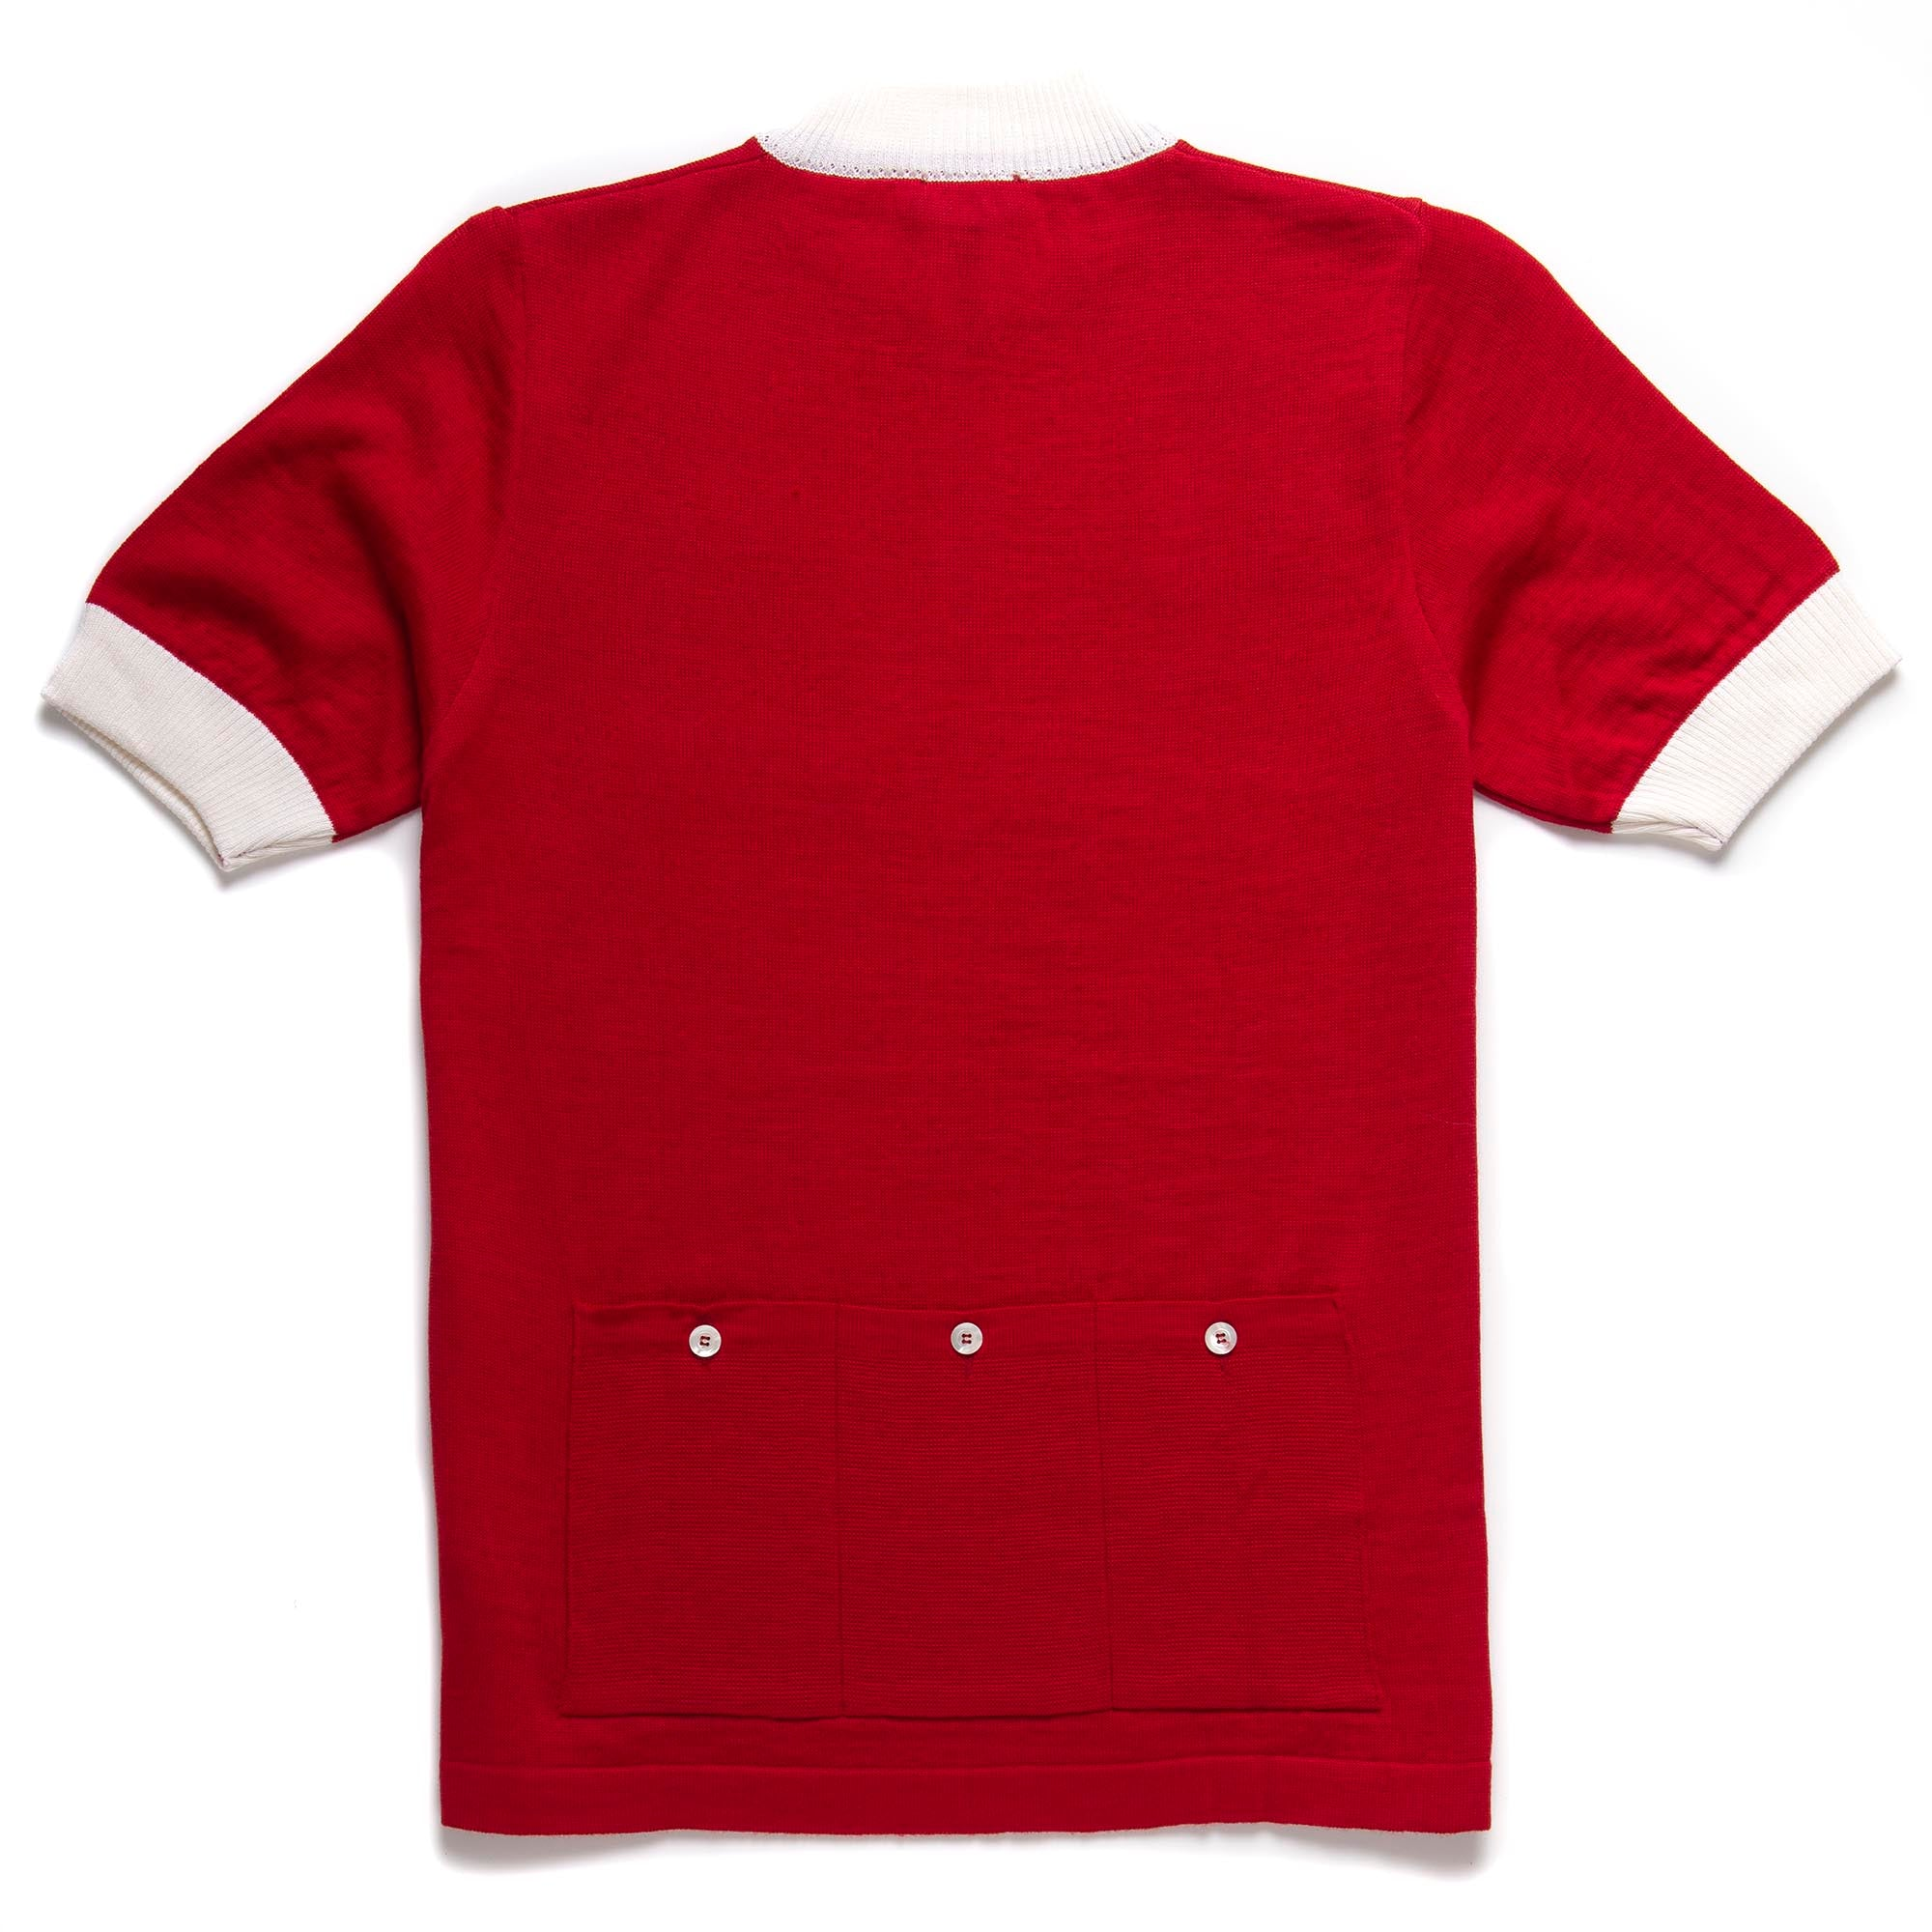 The Harvard Merino Jersey